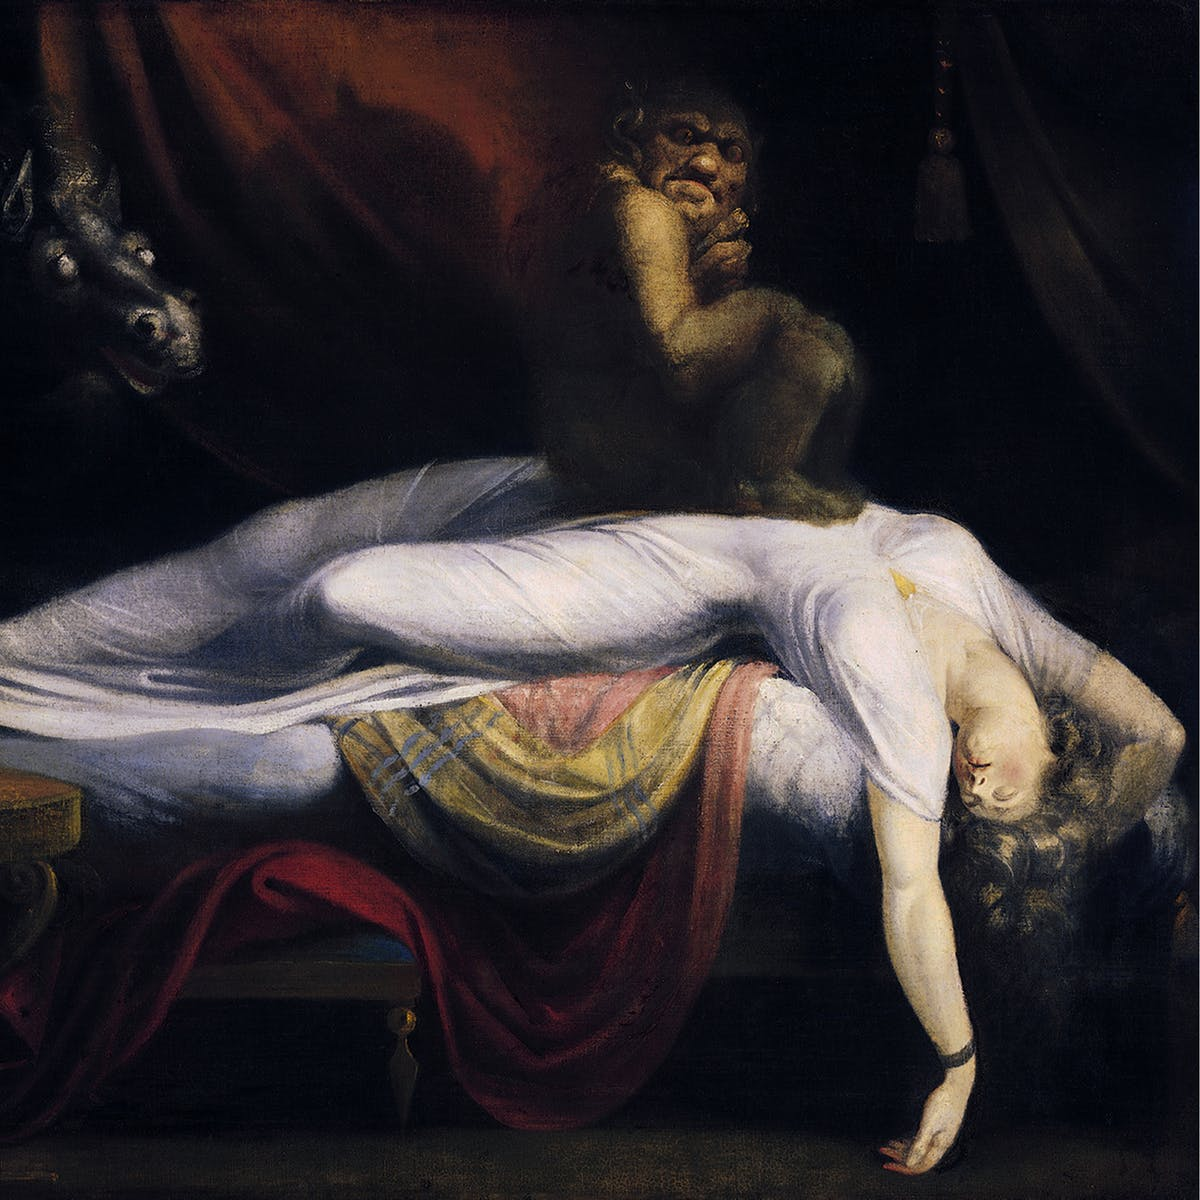 The 6 Ways a Terrifying Episode of Sleep Paralysis Can Be Triggered